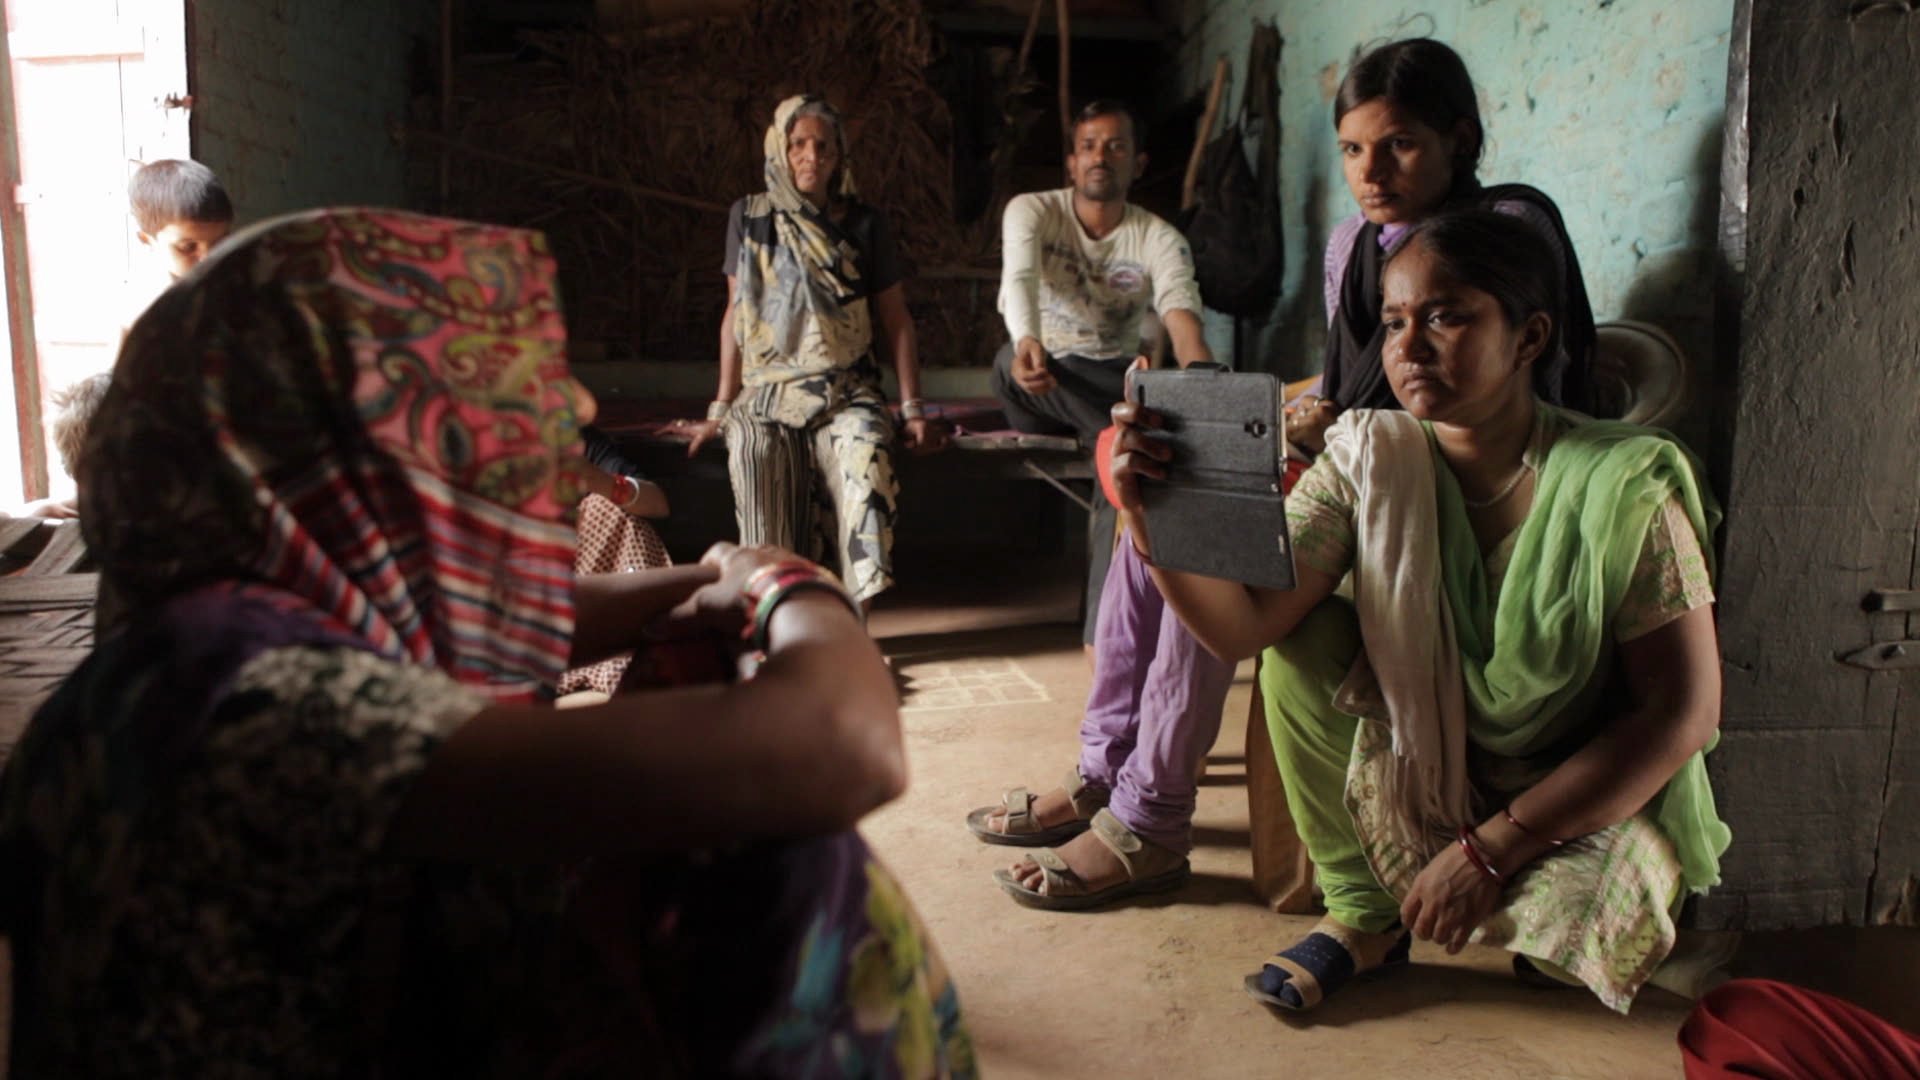 """Still from """"Writing with Fire"""". A person wearing a head covering looks away from the camera, woman wearing draped clothing and sandals crouches on the floor, holding up a smartphone to film them. Three adults and a child watch from behind. The walls and floor are bare, painted in washed out colours."""